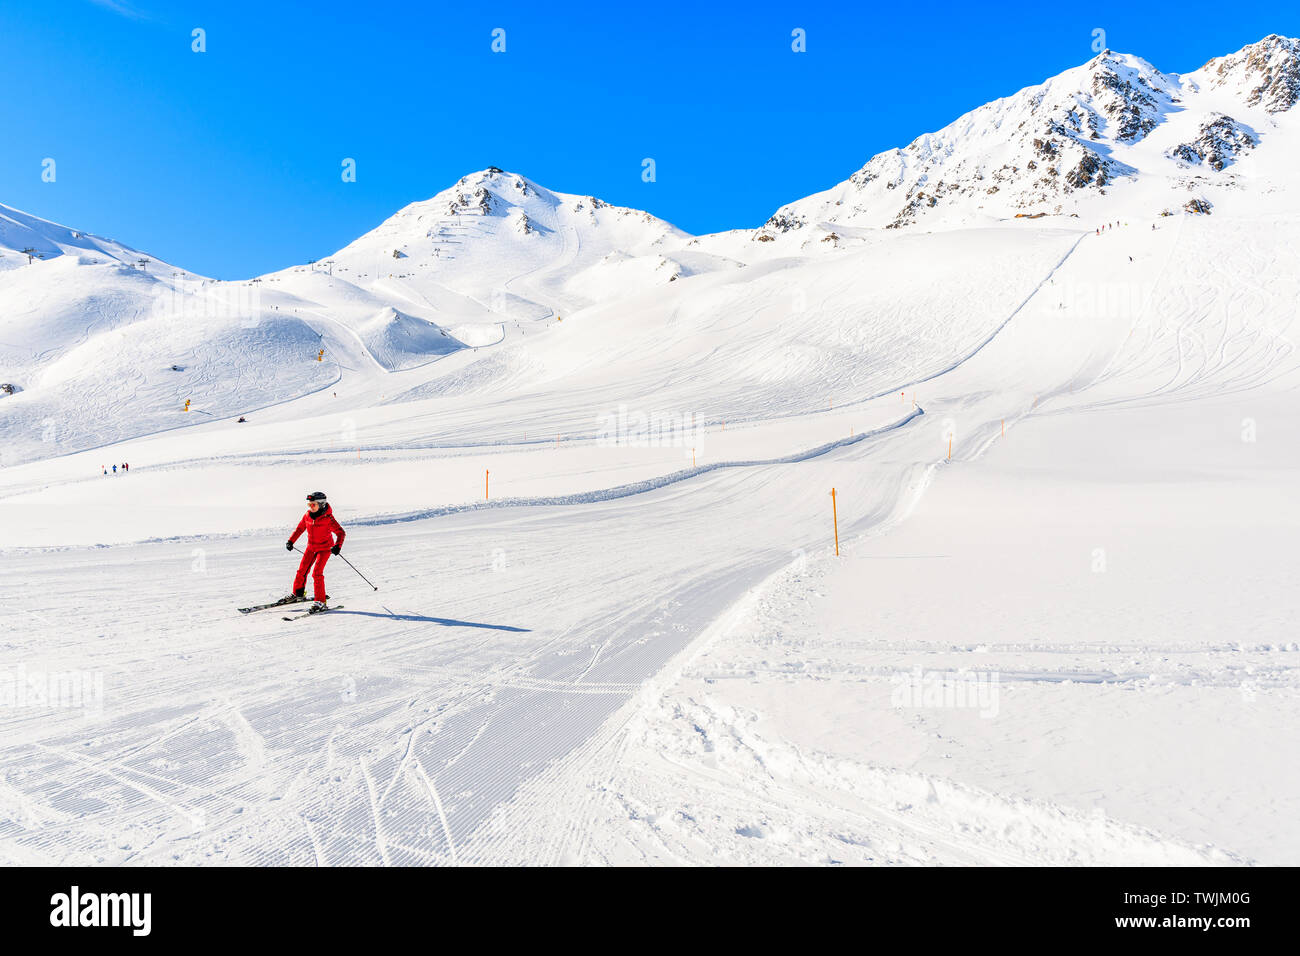 SERFAUS FISS LADIS SKI AREA, AUSTRIA - FEB 14, 2019: Woman skier on slope in amazing Austrian Alps in beautiful winter season, Serfaus Fiss Ladis, Tir Stock Photo